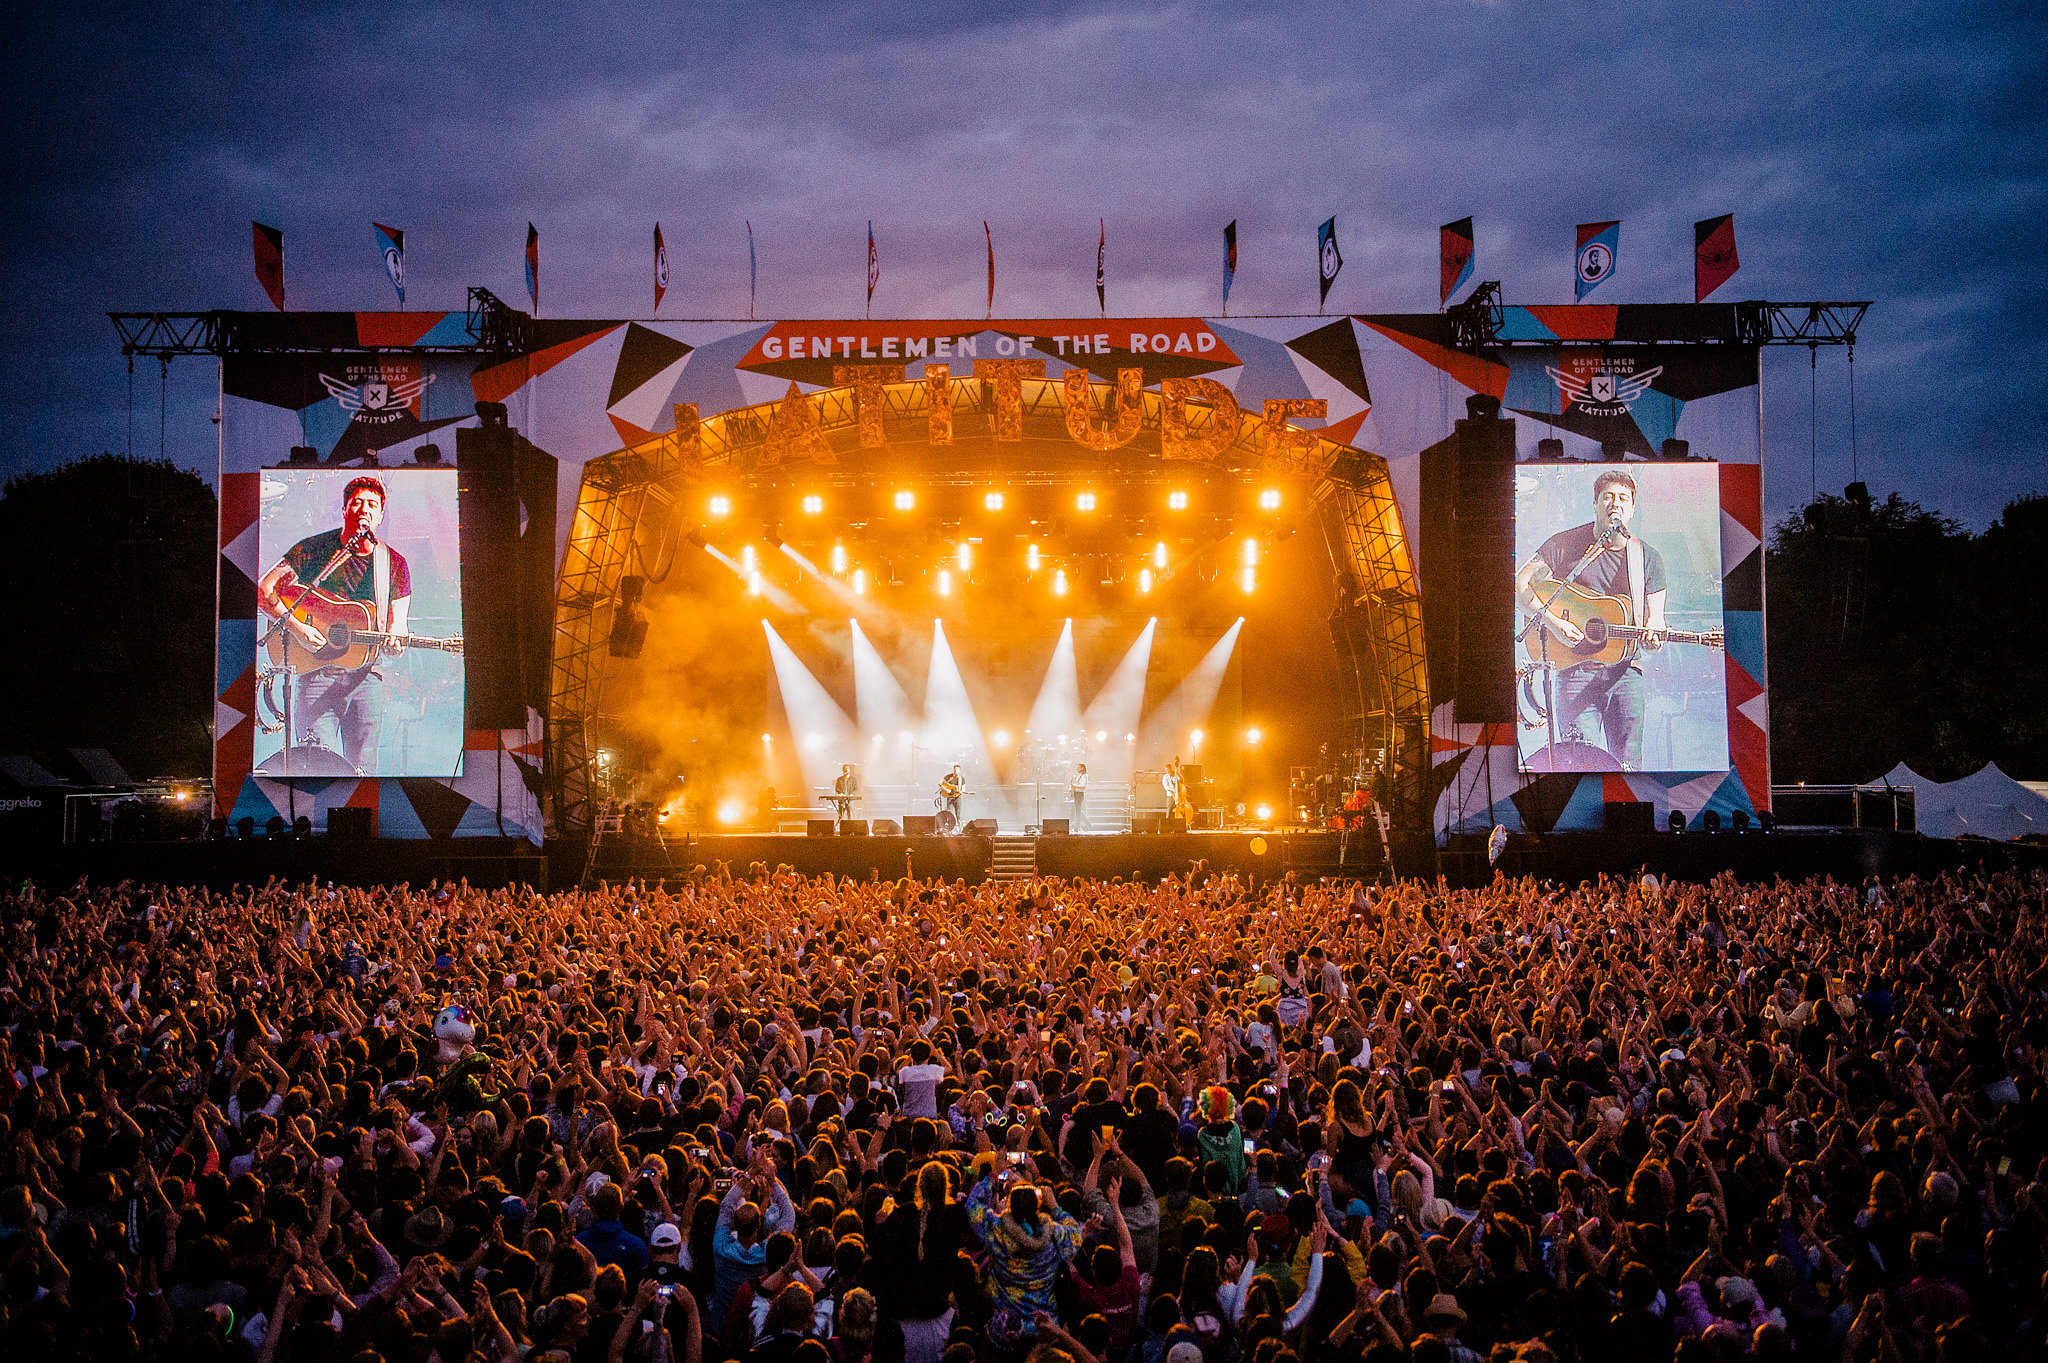 mumford_and_sons63_website_image_2x_vfpk_standard